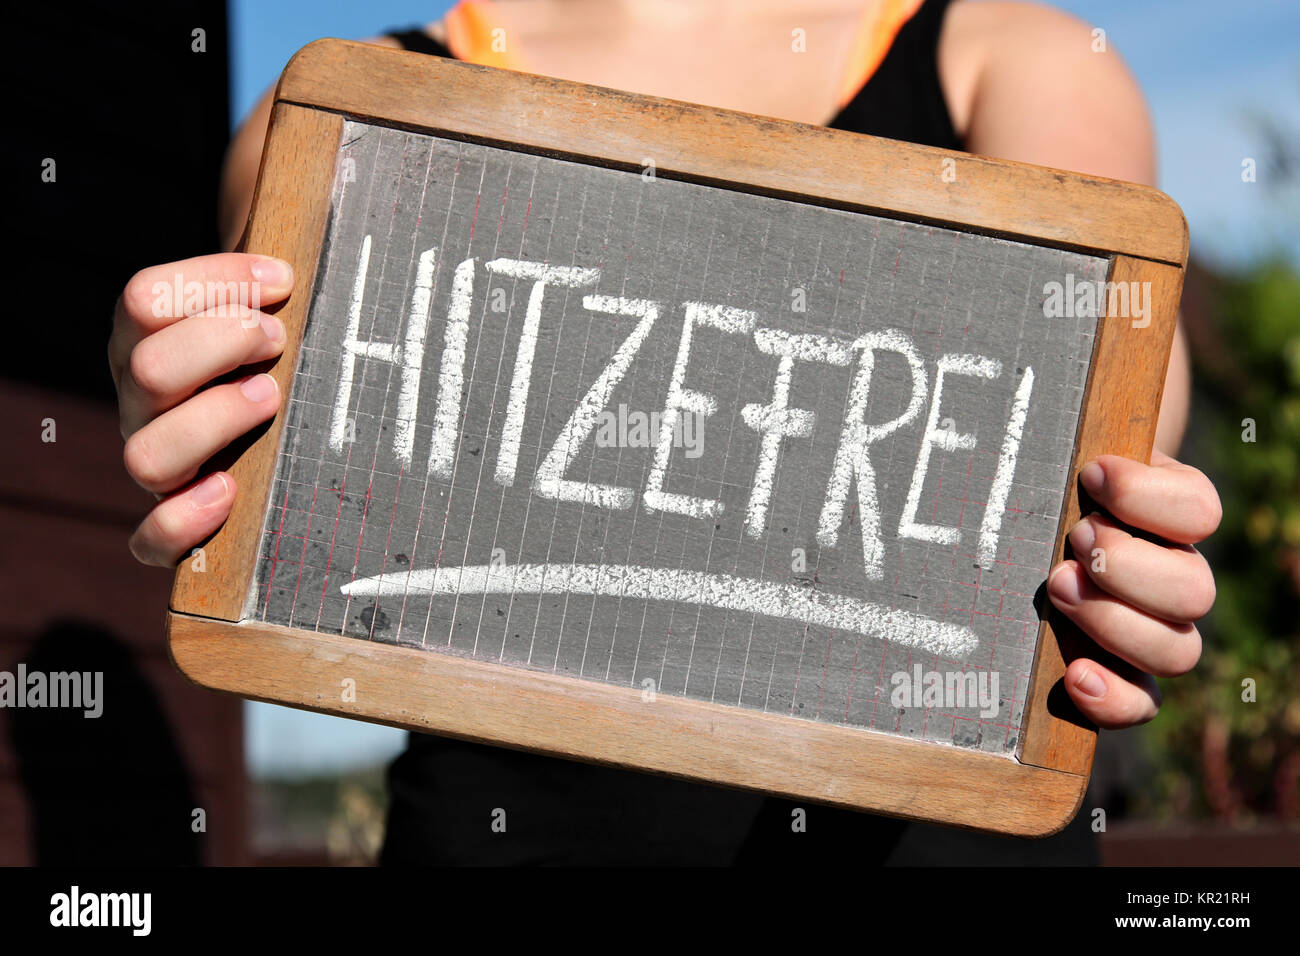 HITZEFREI (German for:  to have time off from school on account of excessively hot weather) written with chalk on - Stock Image